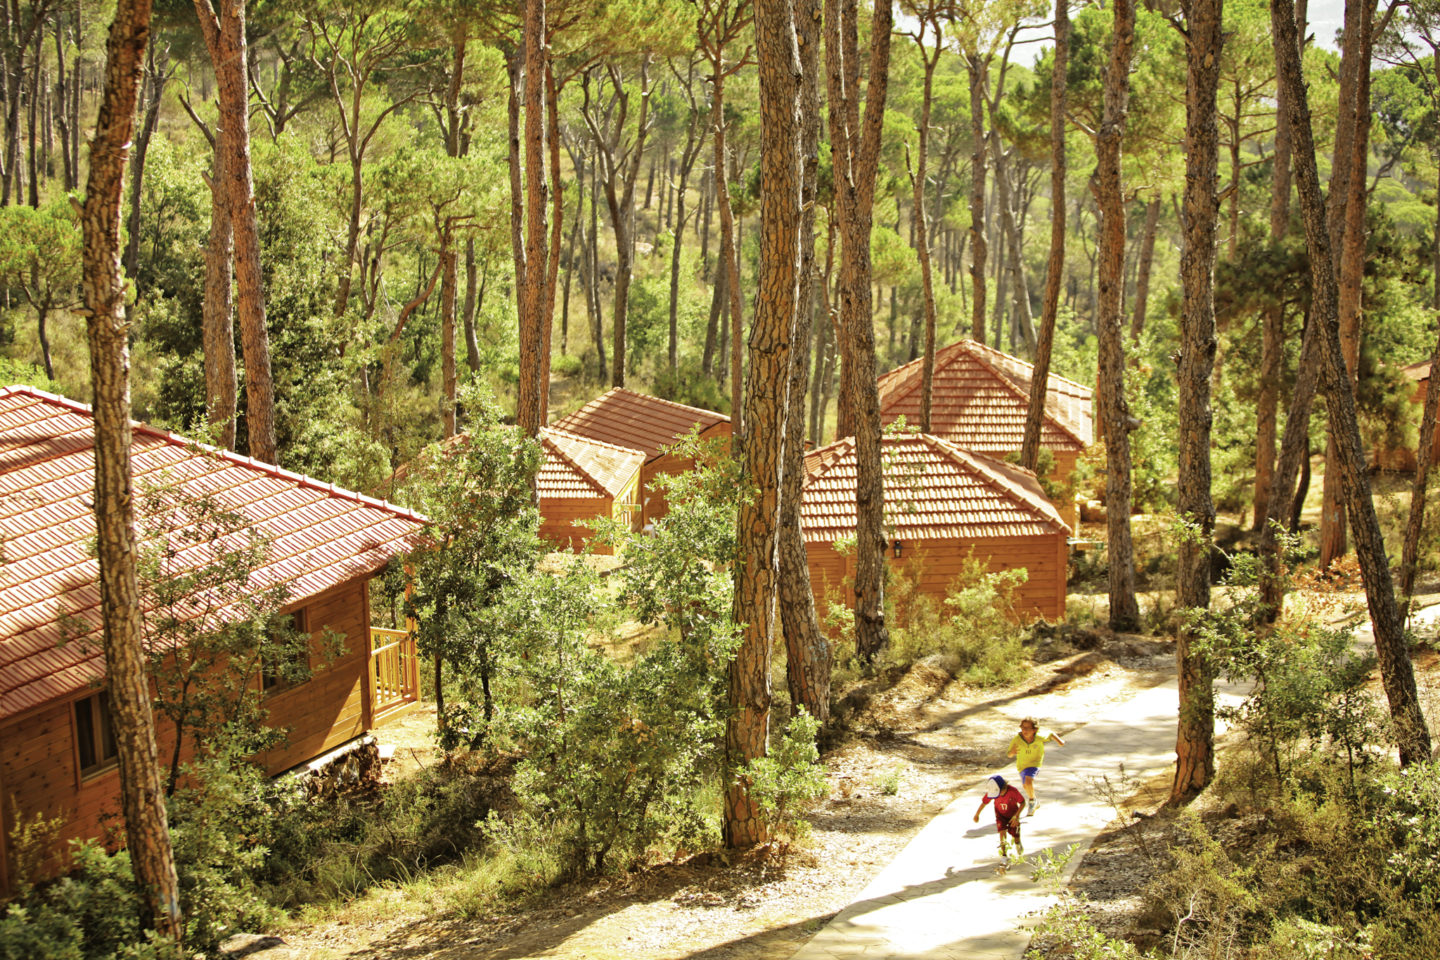 The largest green space in Lebanon is now home to sustainable tourism | The Switchers